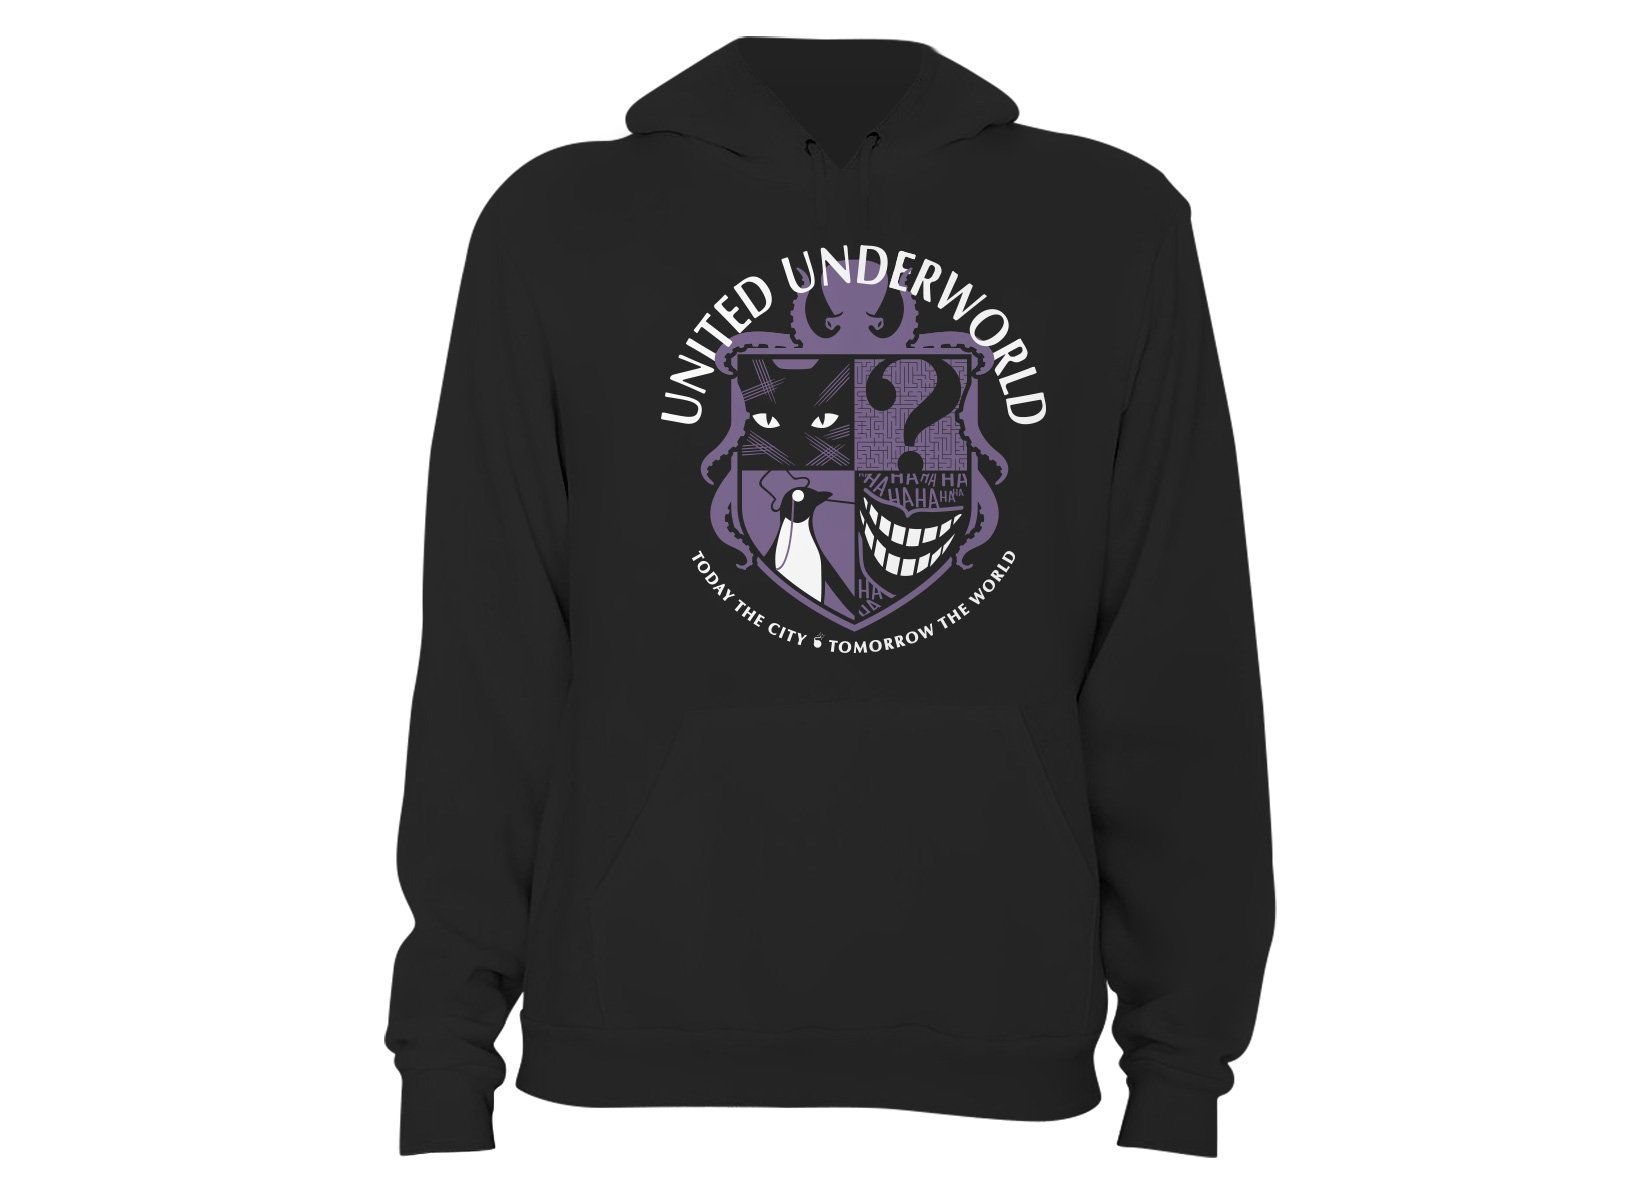 United Underworld on Hoodie